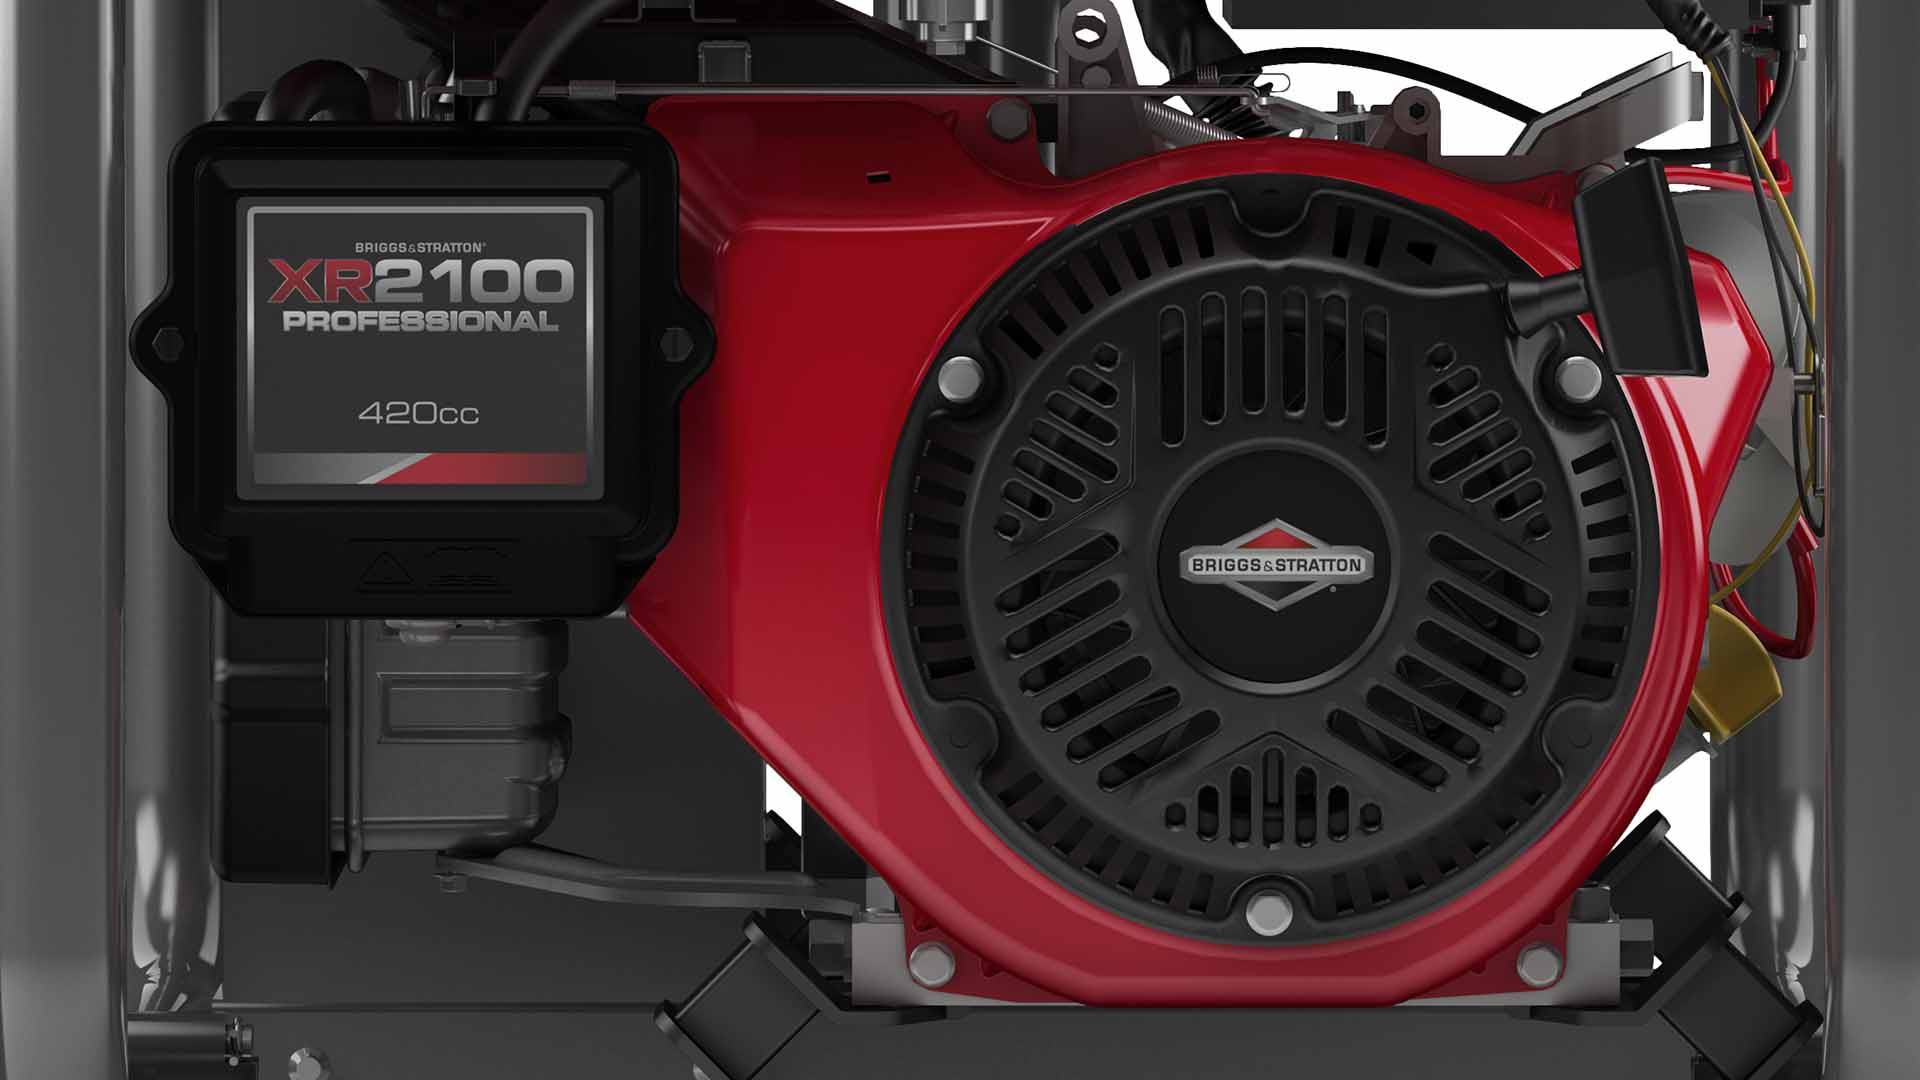 Briggs & Stratton Engine (420cc)